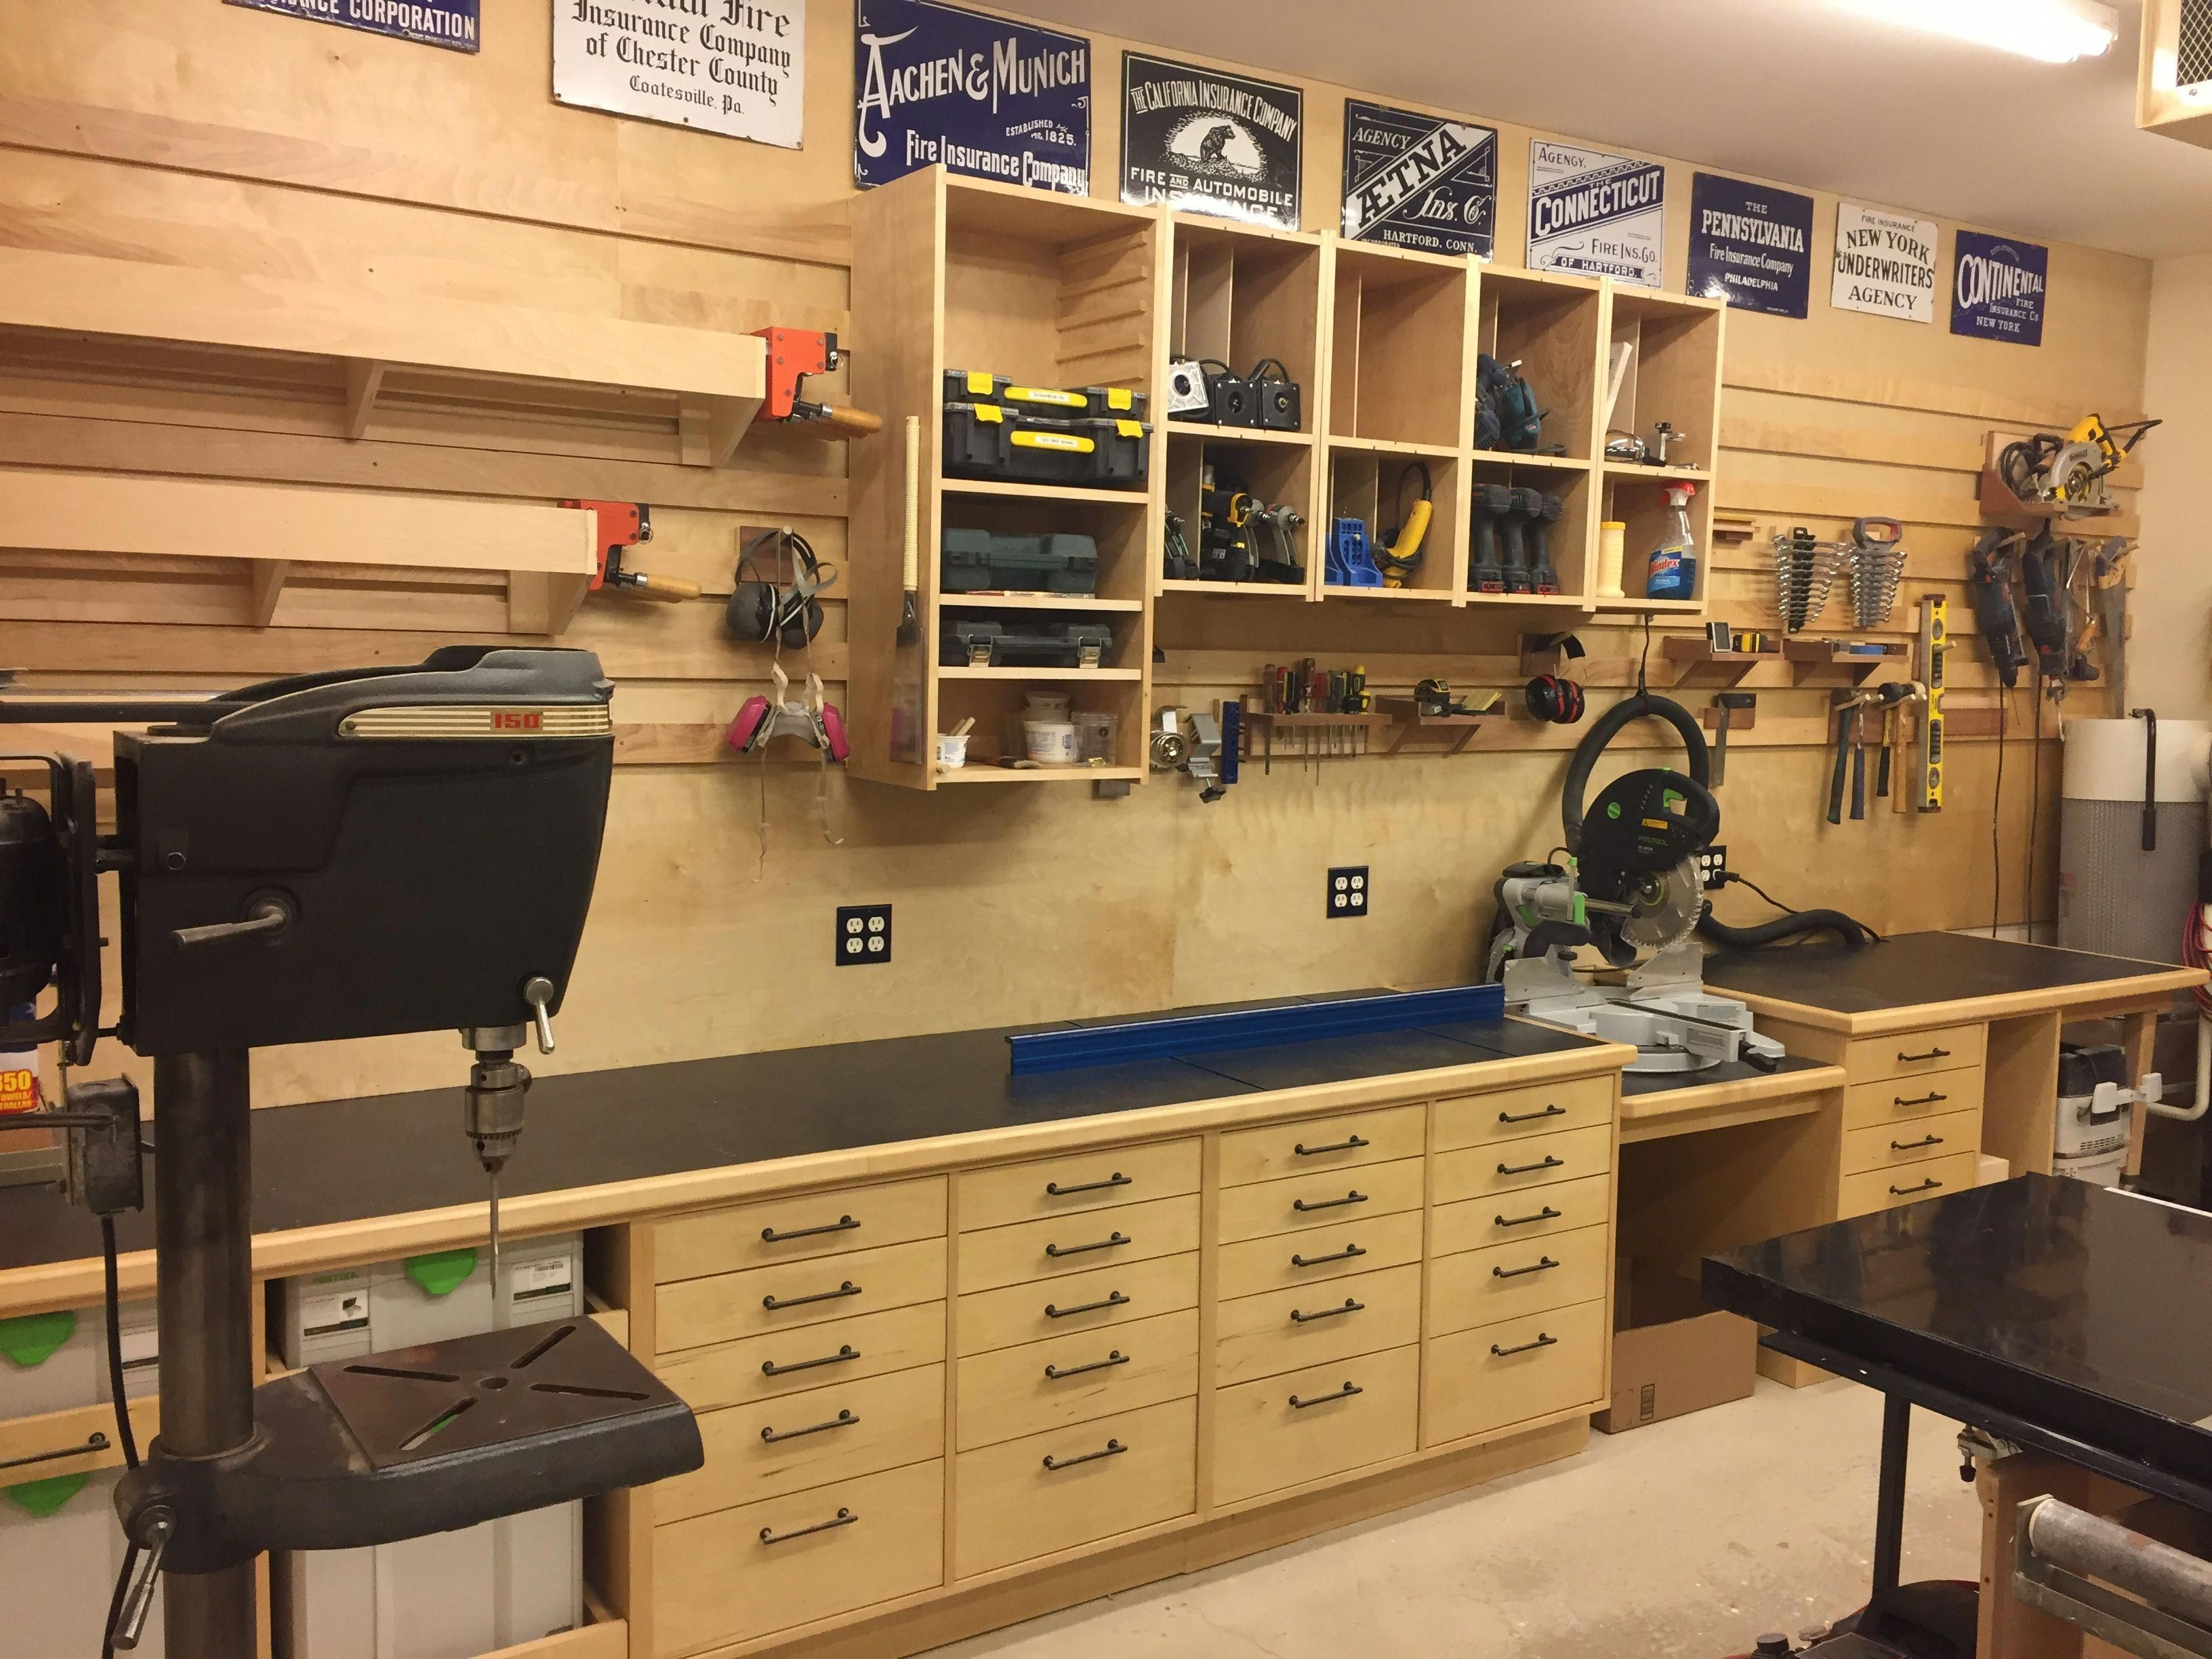 Woodworking Bench Vise Woodworkinggifts Code 2123105602 Woodworking Shop Layout Workshop Storage Wood Shop Projects